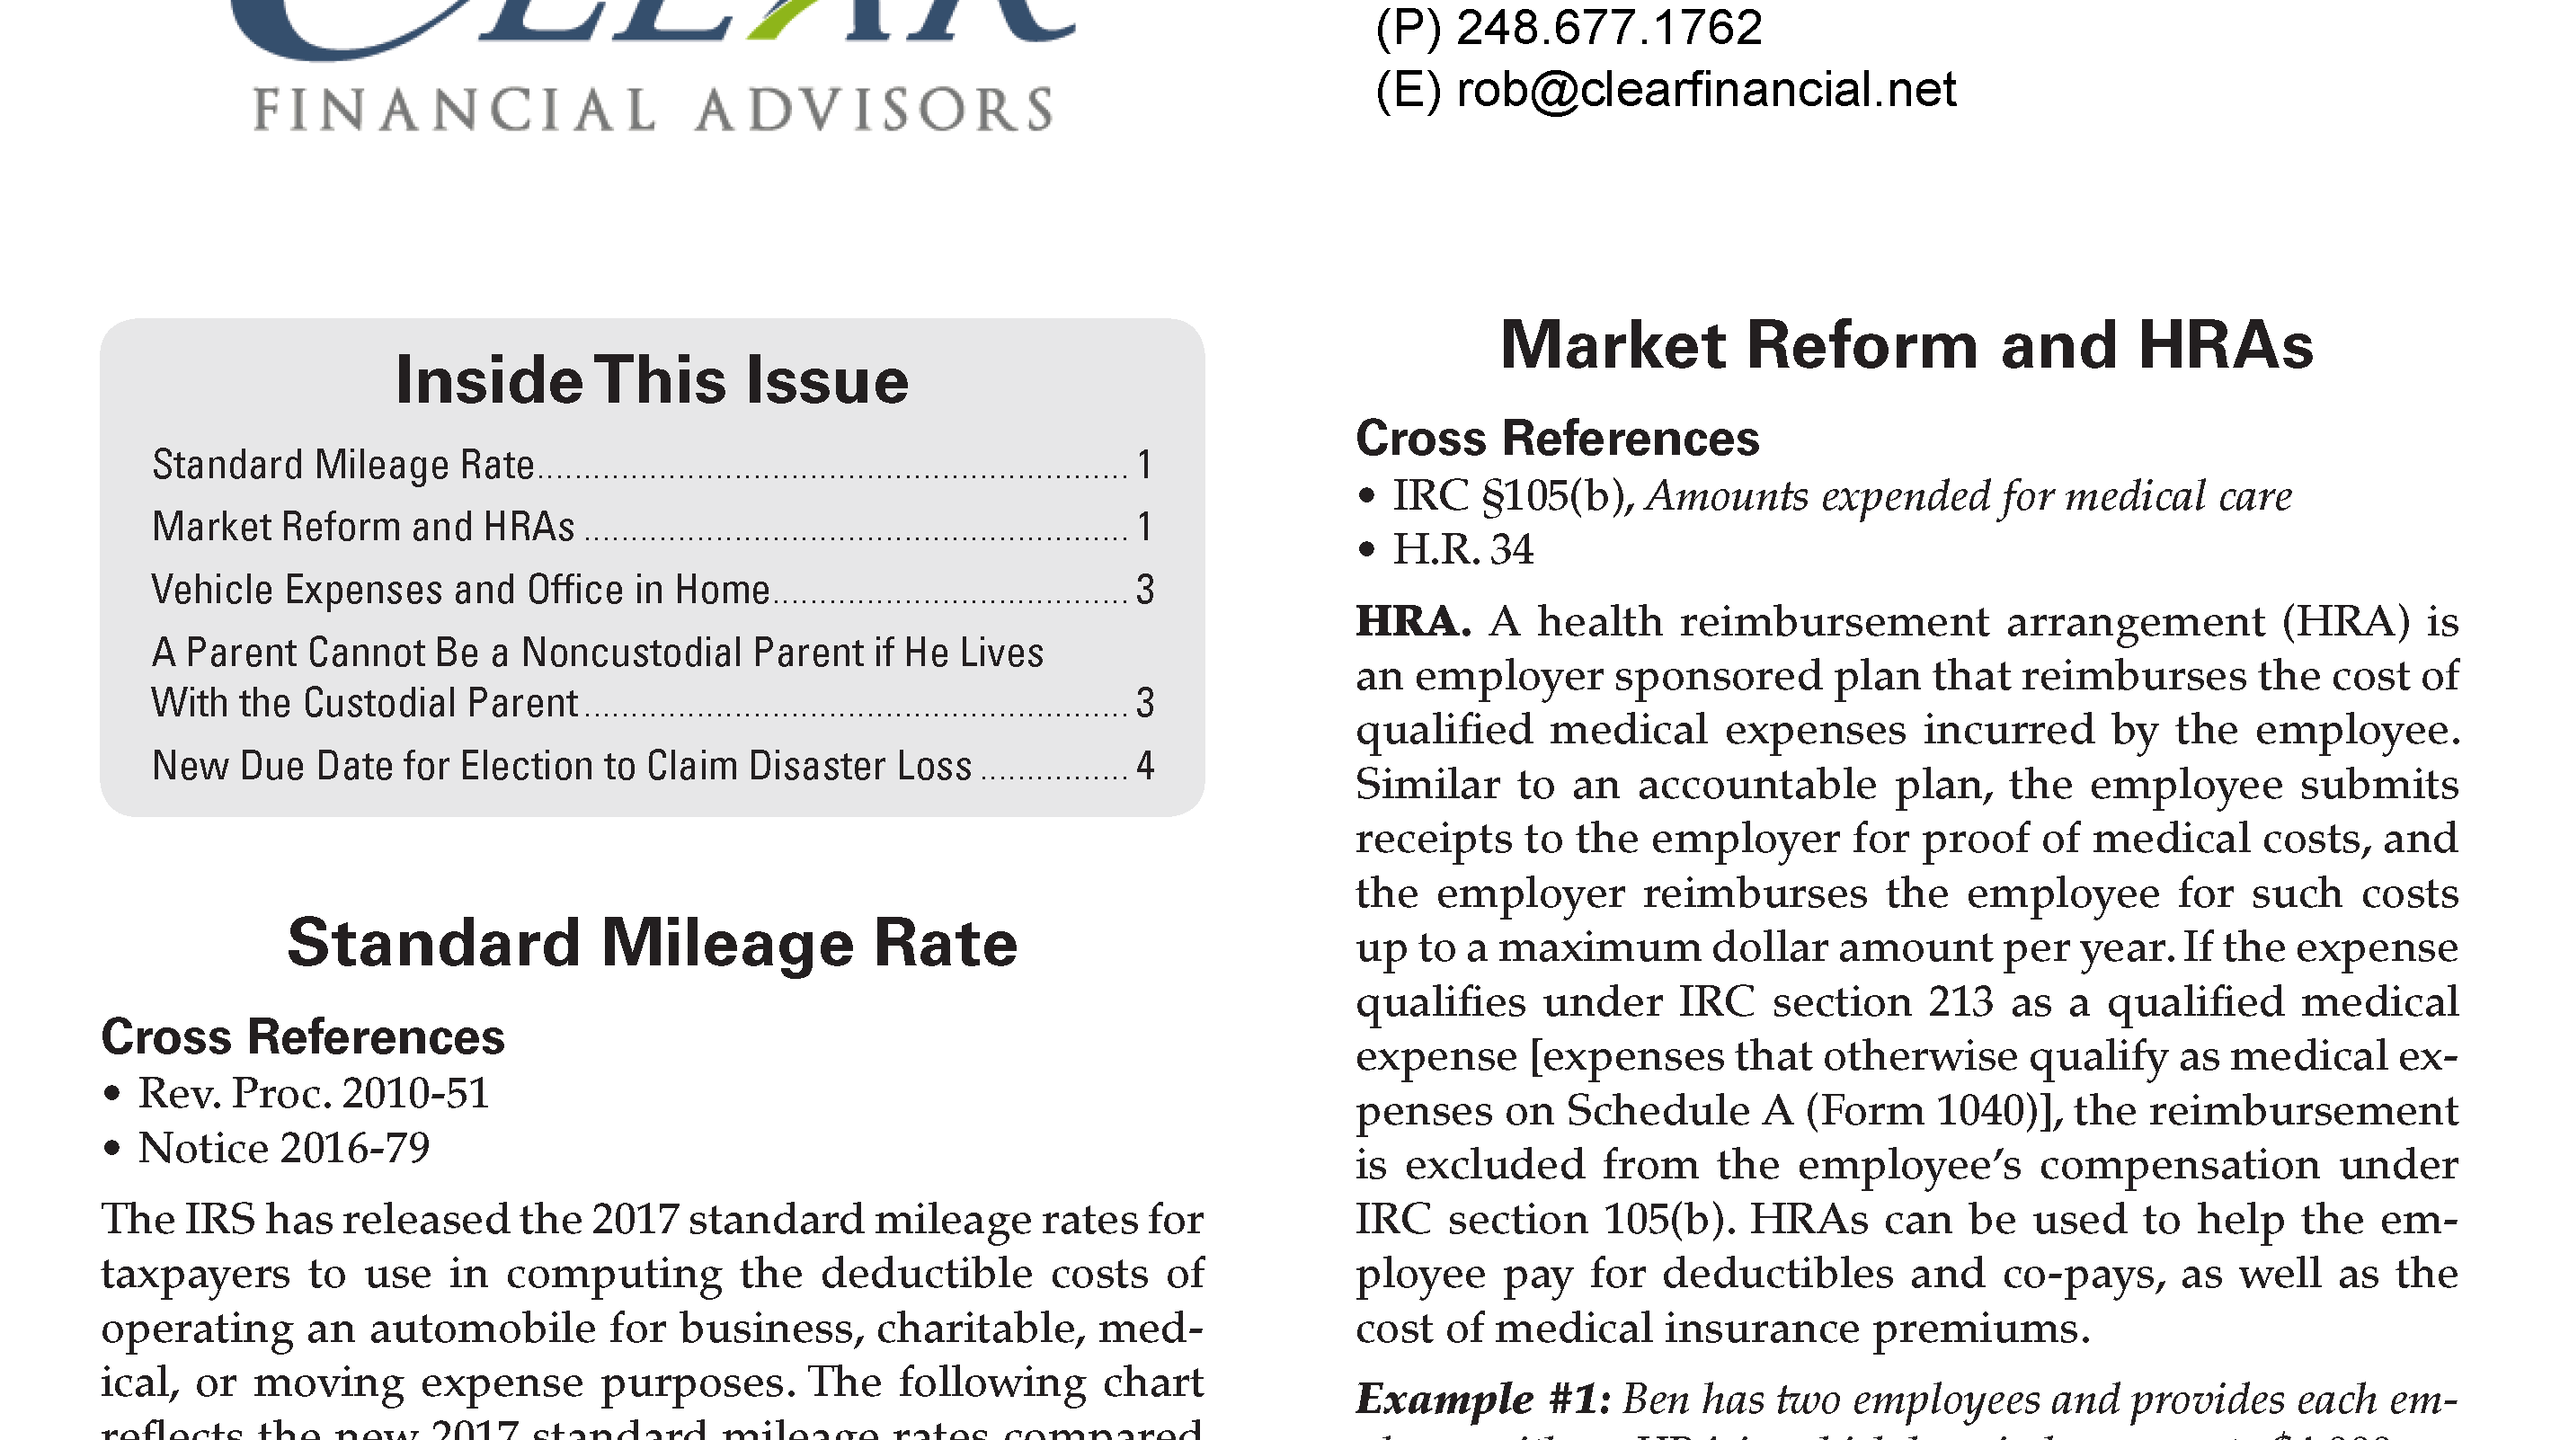 2017_Tax_News_and_Industry_Updates_-_Volume_5_Issue_1_Released_January_2017_2017_Page_1